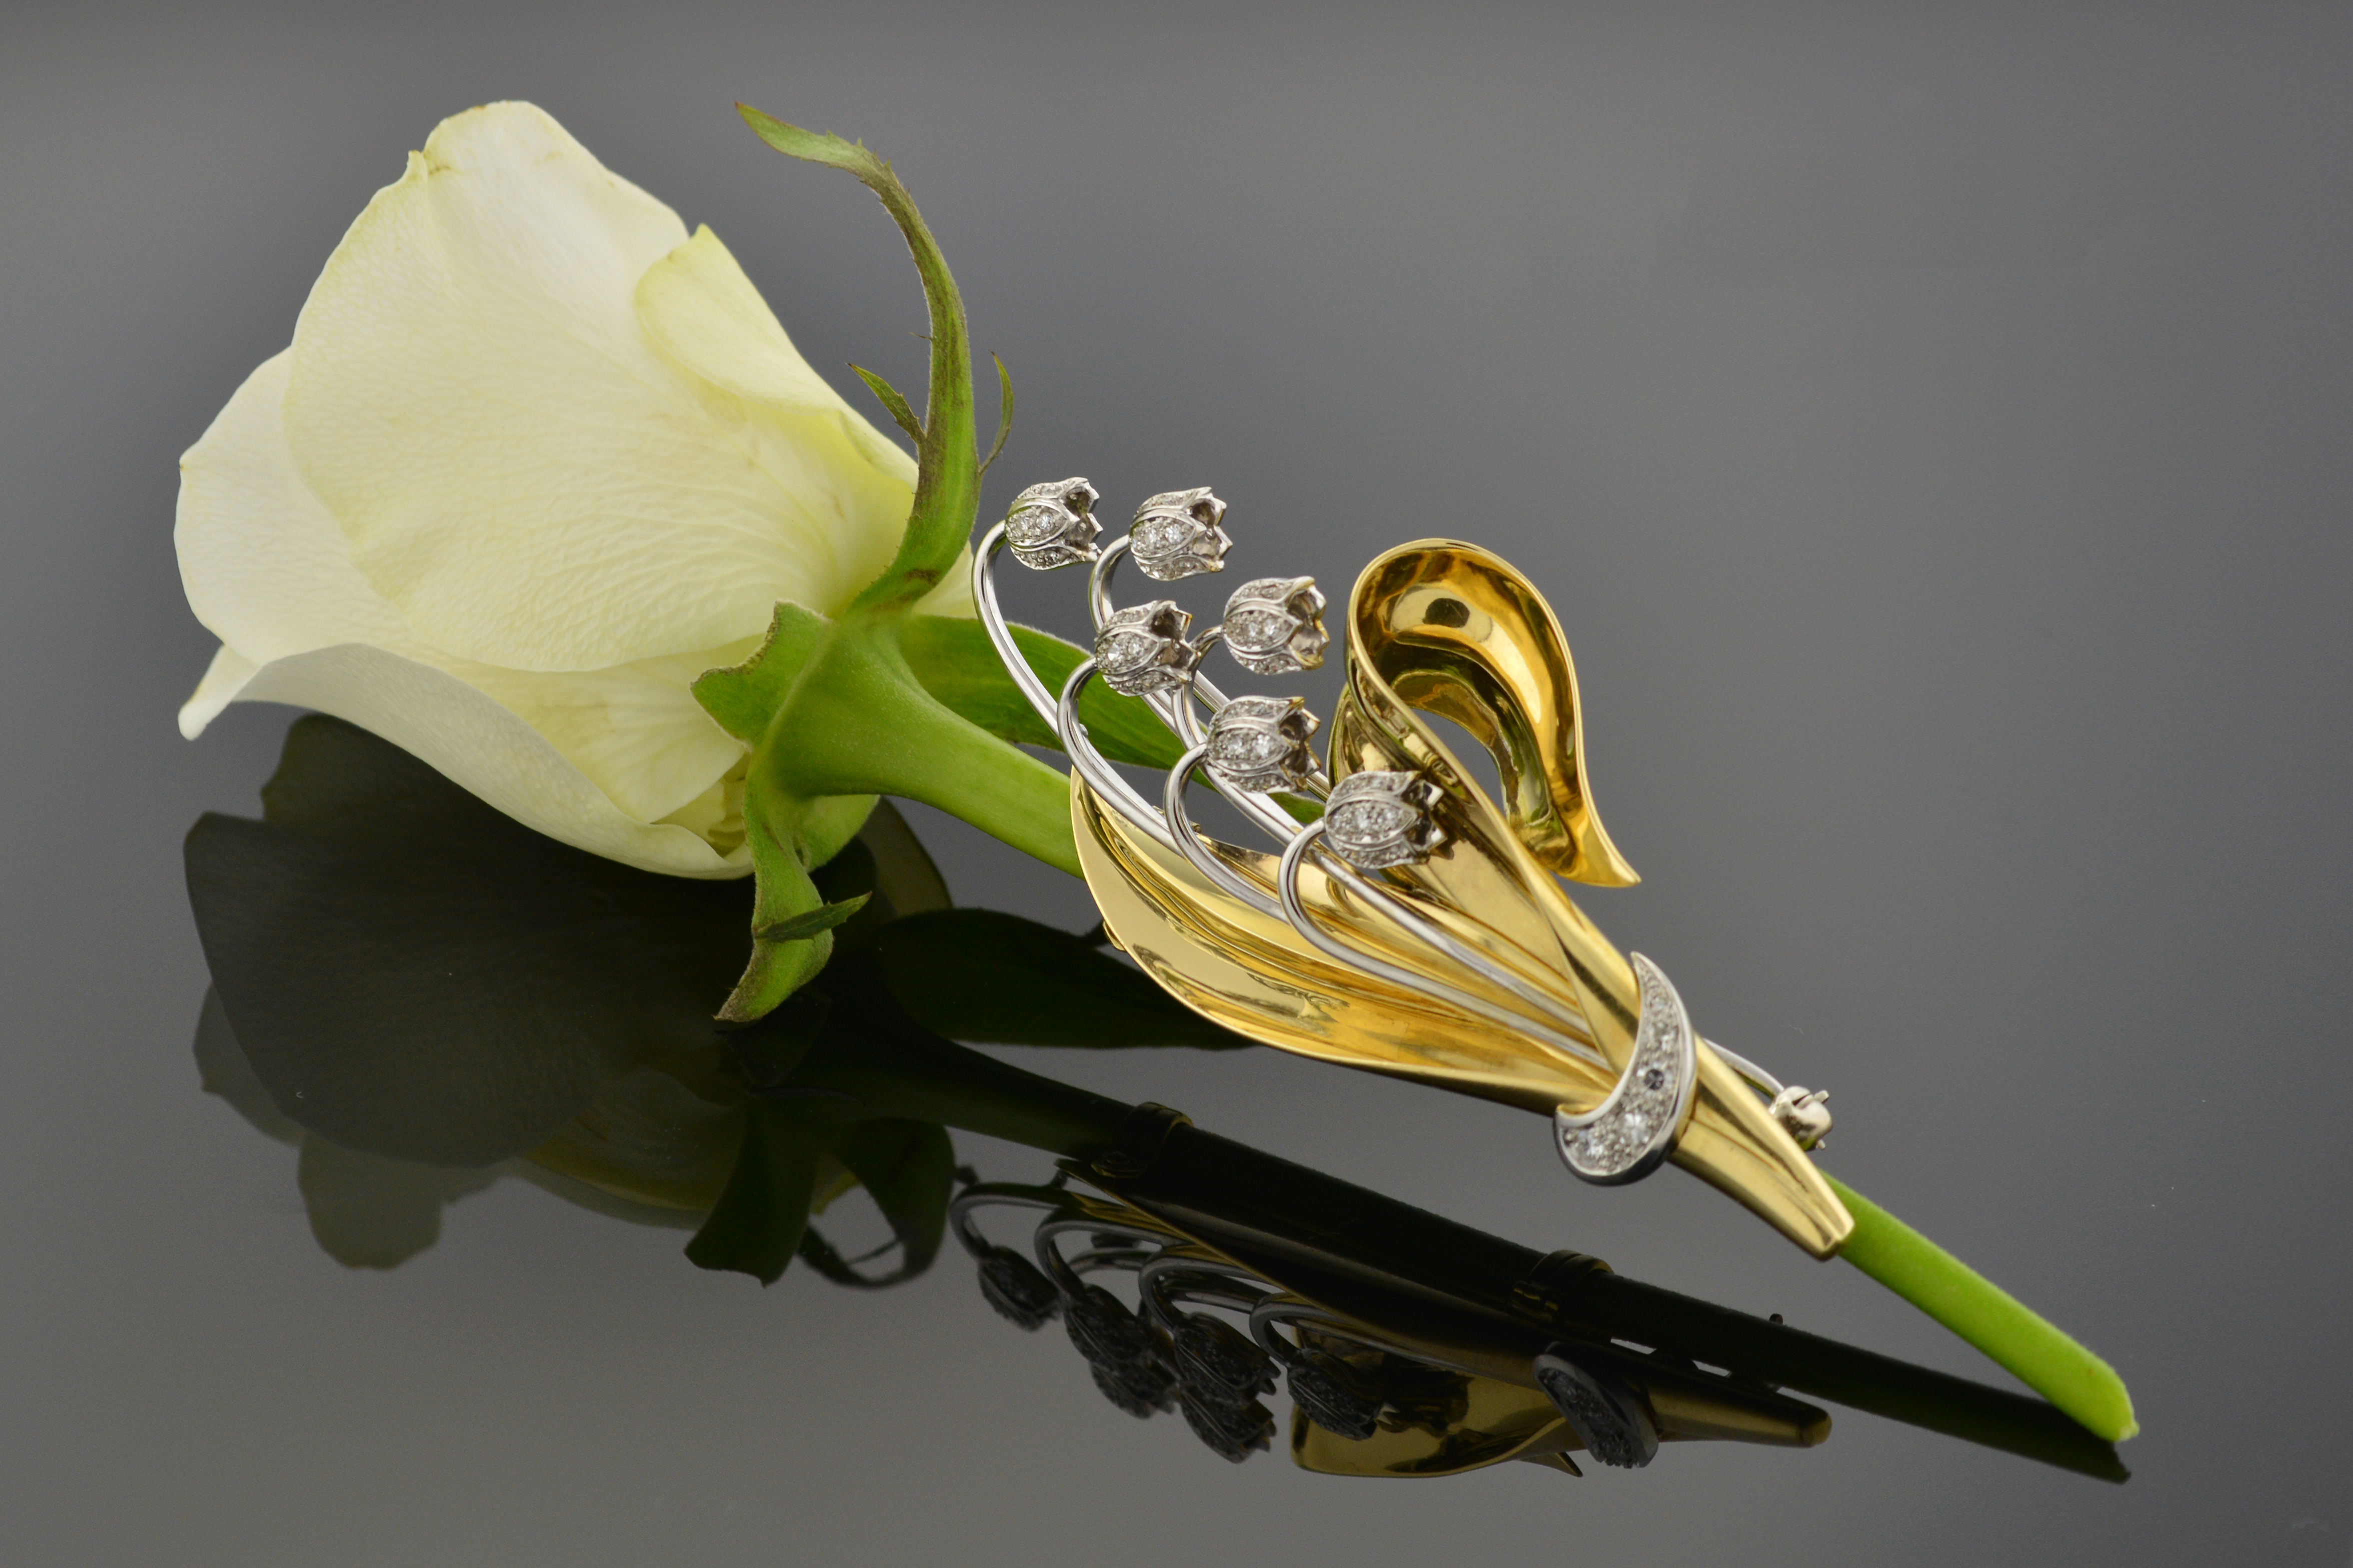 Item #4619 Vintage Boutonniere Brooch 4619